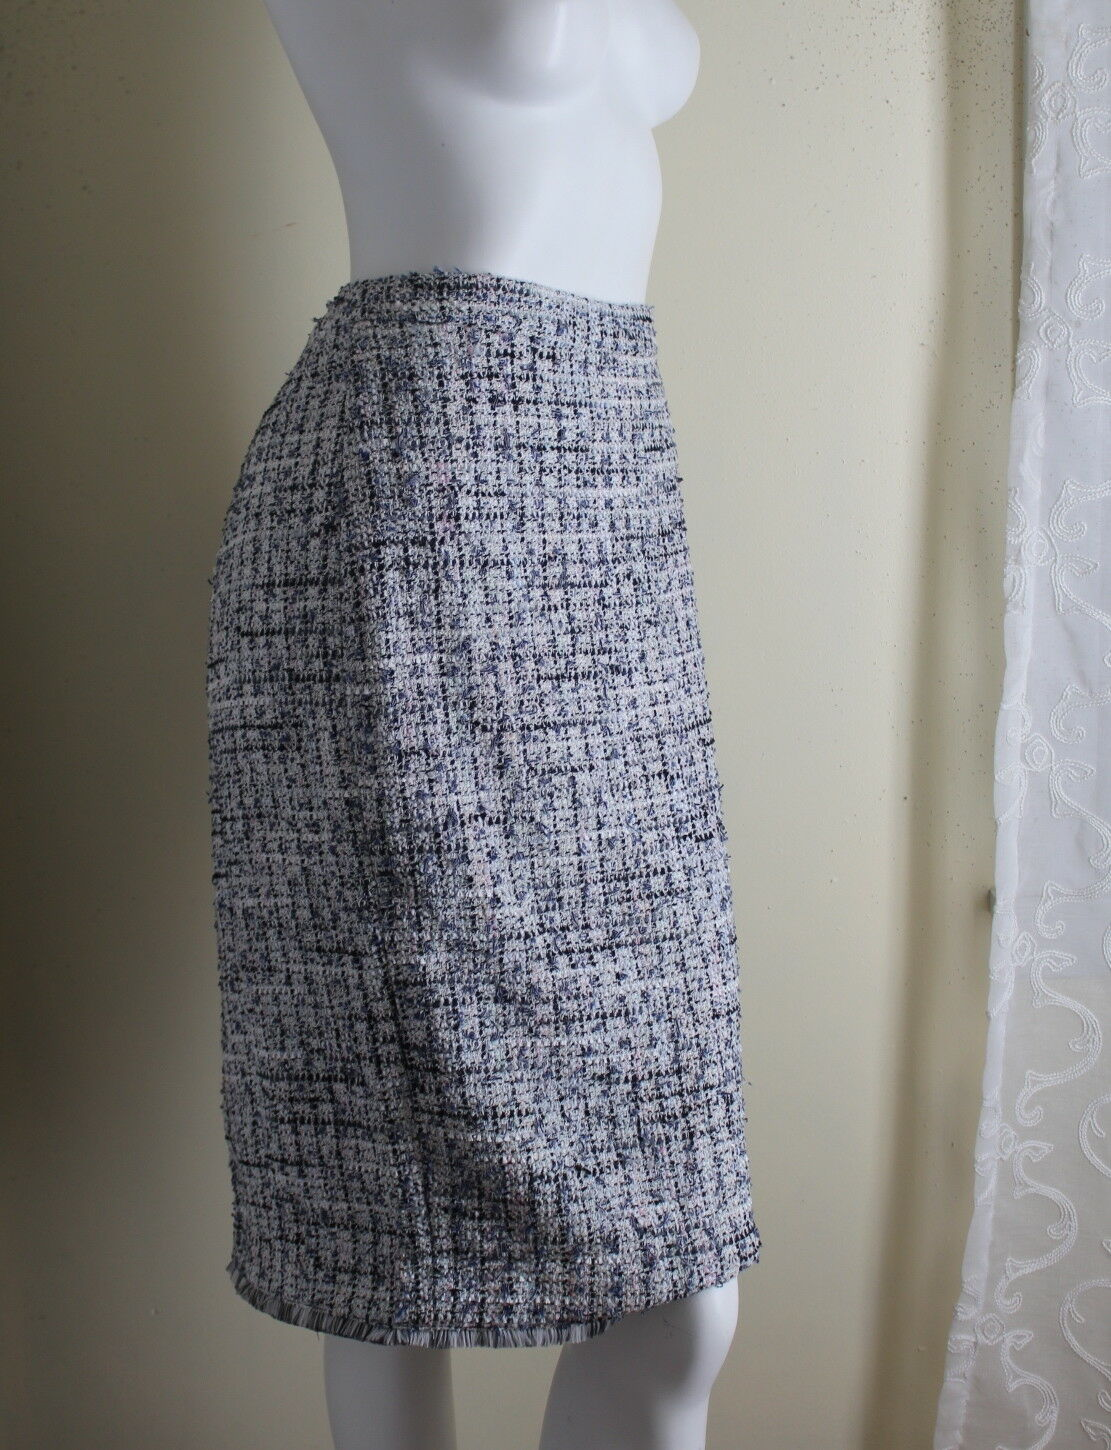 NWT ANN TAYLOR -Sz 10T 10 Tall Exquisite bluee White TWEED Pencil Straight Skirt